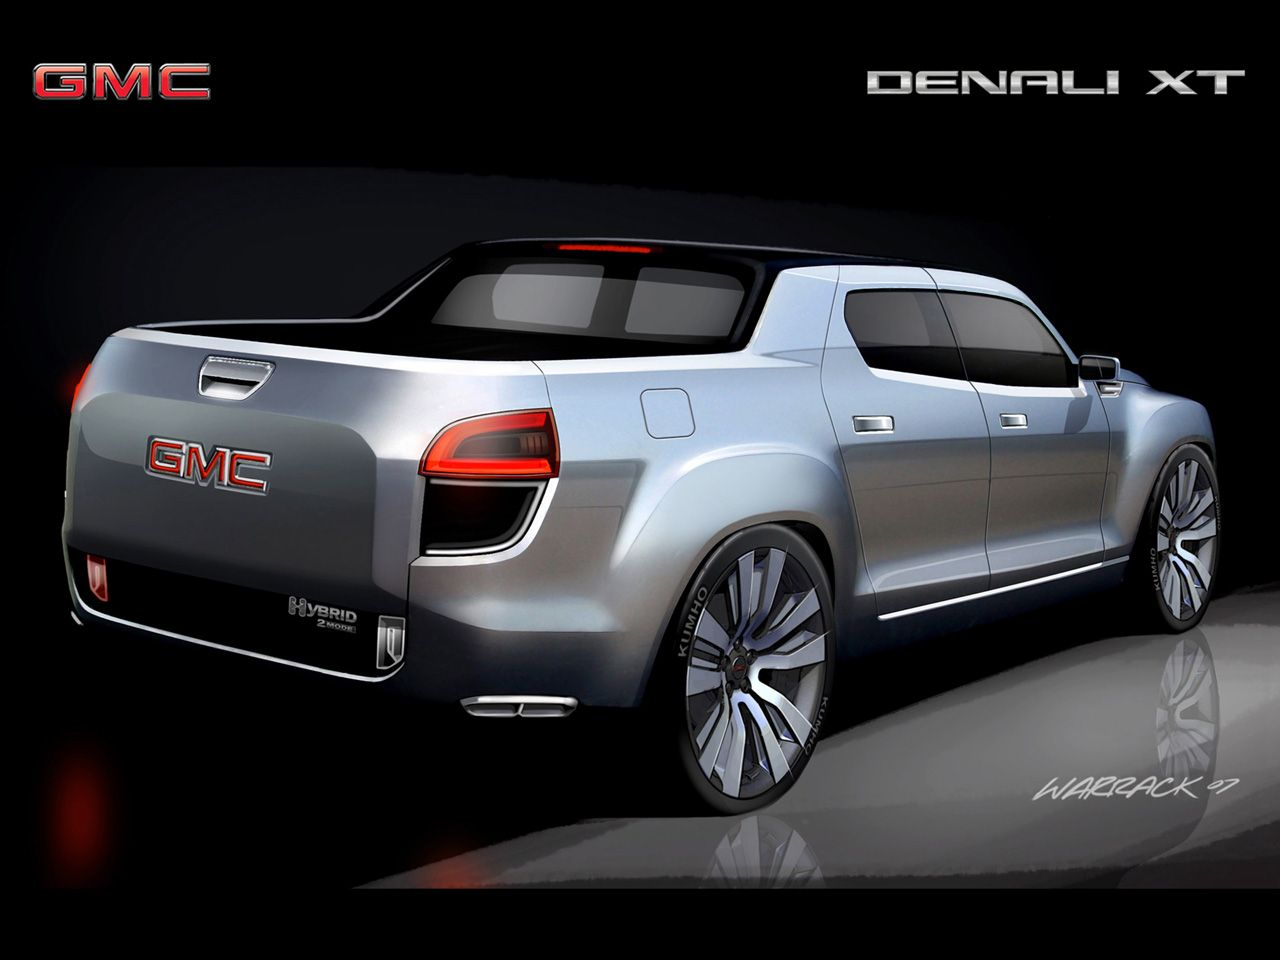 2019 GMC Denali XT Concept photo - 3